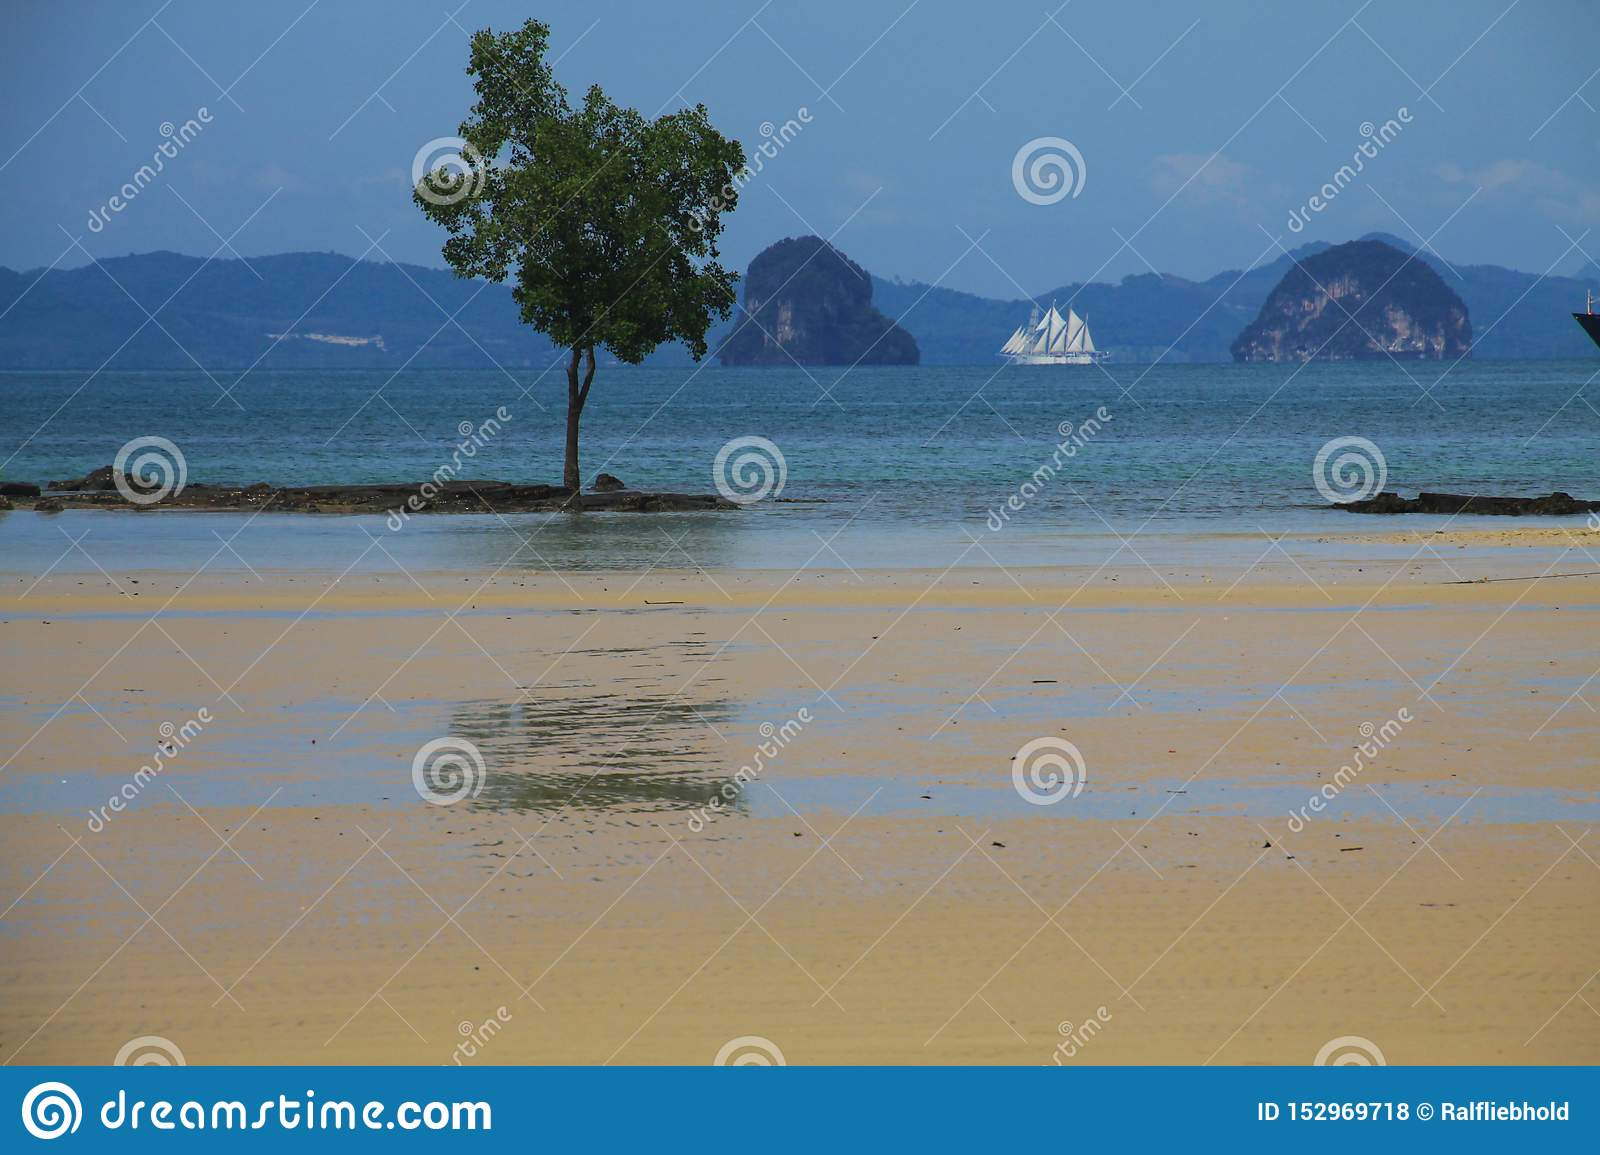 Low tide at Thailands coastline with rock formation, tree and sailing ship in the background, Ao Nang, Krabi